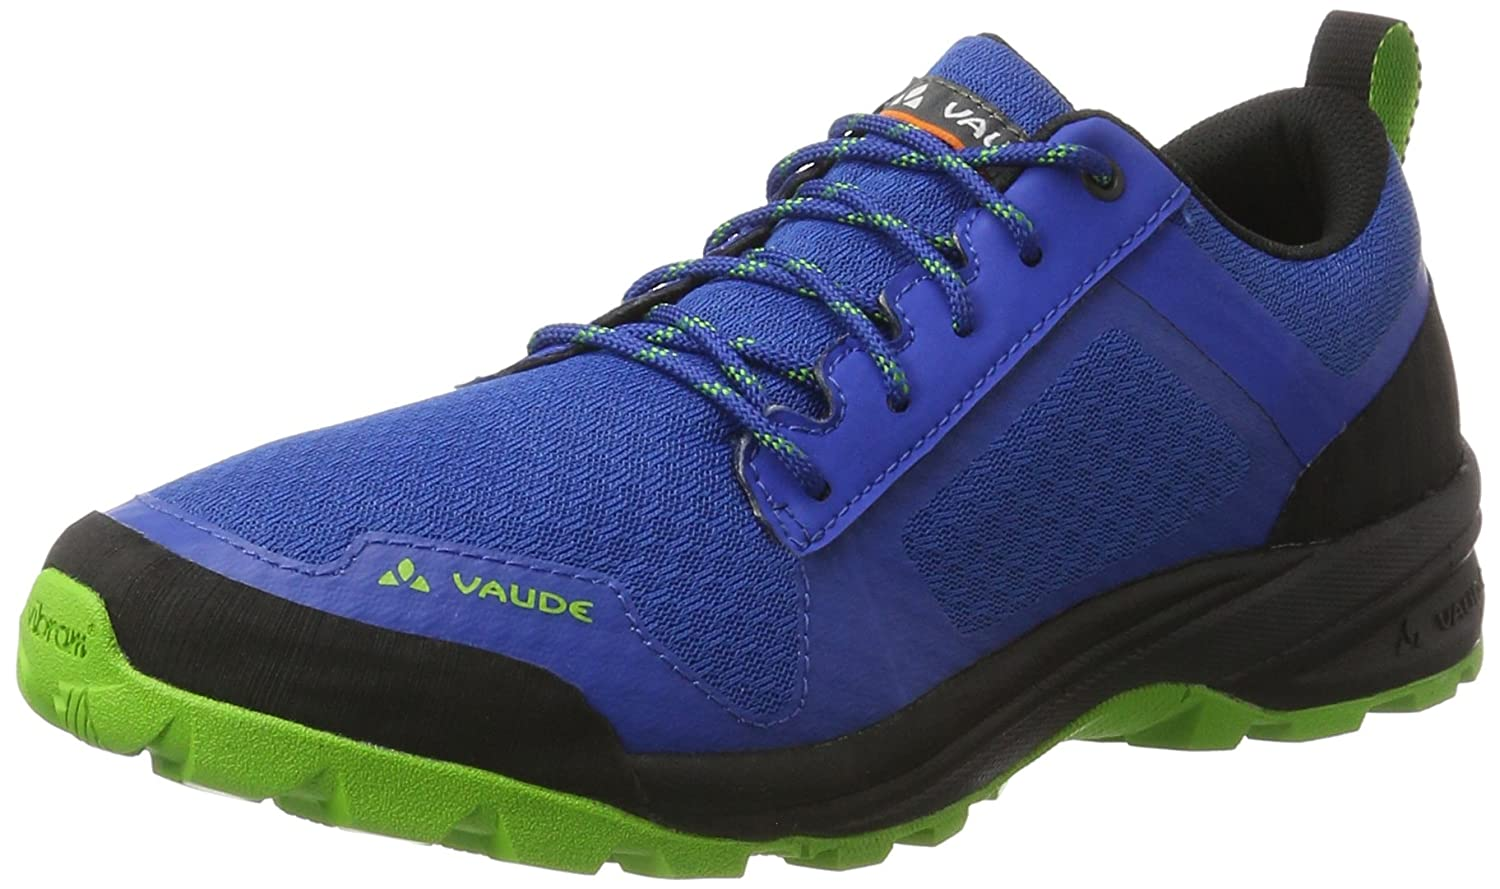 Womens Tvl Active Low Rise Hiking Boots, Reef, 7.5 UK Vaude